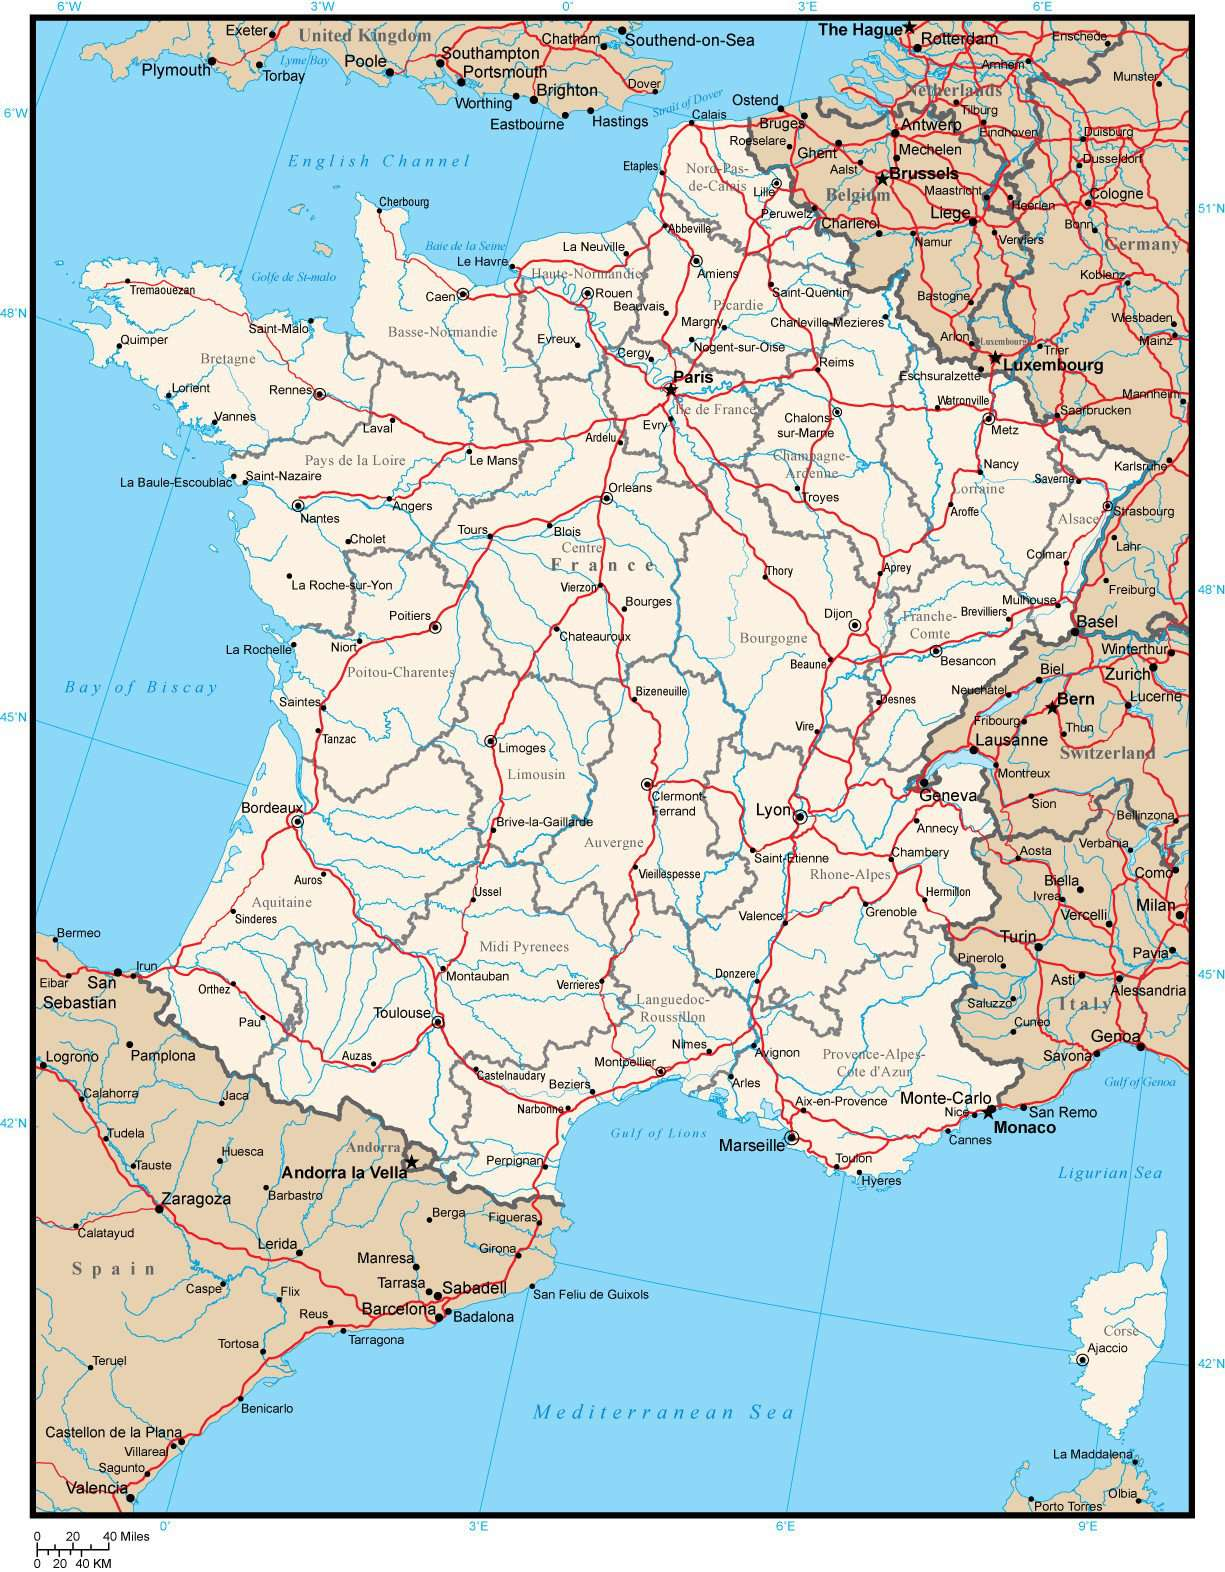 France Map with Provinces, Cities, Rivers and Roads on map of france with compass rose, map of france with longitude, map of france with elevation, map of france with forests, map of france with islands, map of france with vegetation, map of france with airports, map of france with borders, map of france with provinces, map of france with railroads, map of france with plains, map of france with capital, map of france with regions, map of france with bodies of water, map of france with highways, map of france with continent, europe map with major rivers, map of france with mountains, map of france with countries, map of france with oceans,